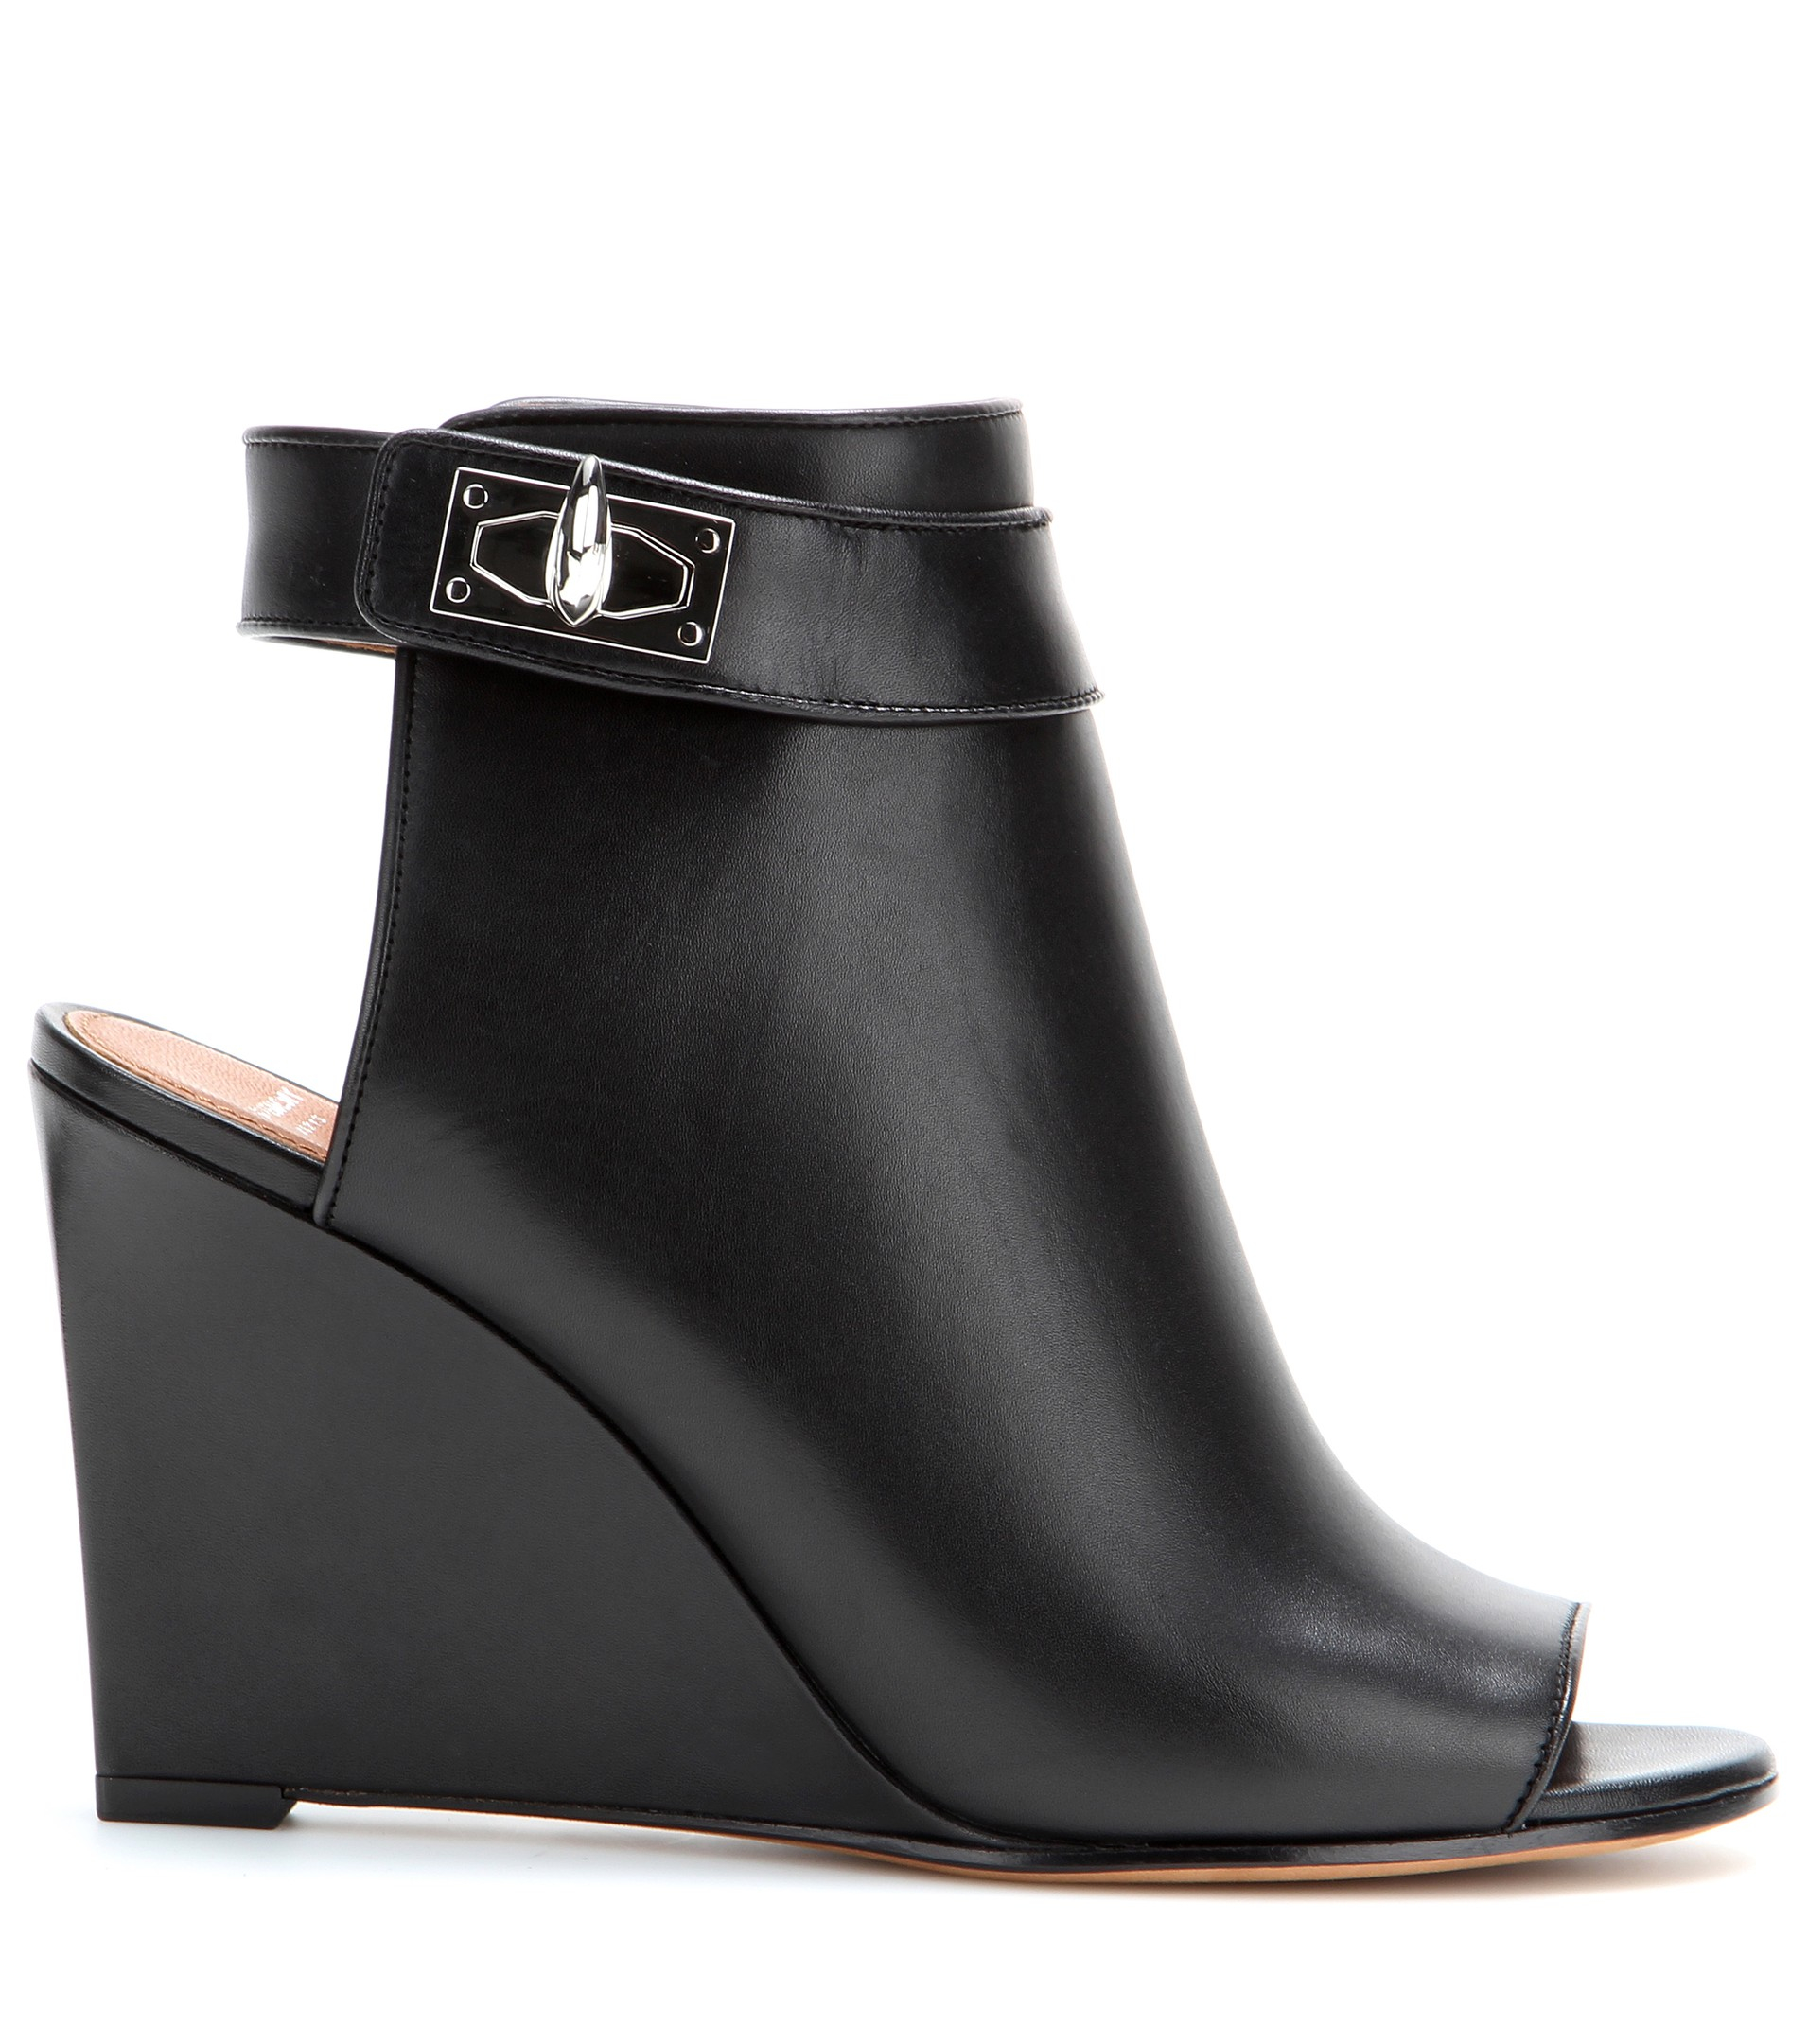 Givenchy Leather Wedge Sandals in Black | Lyst